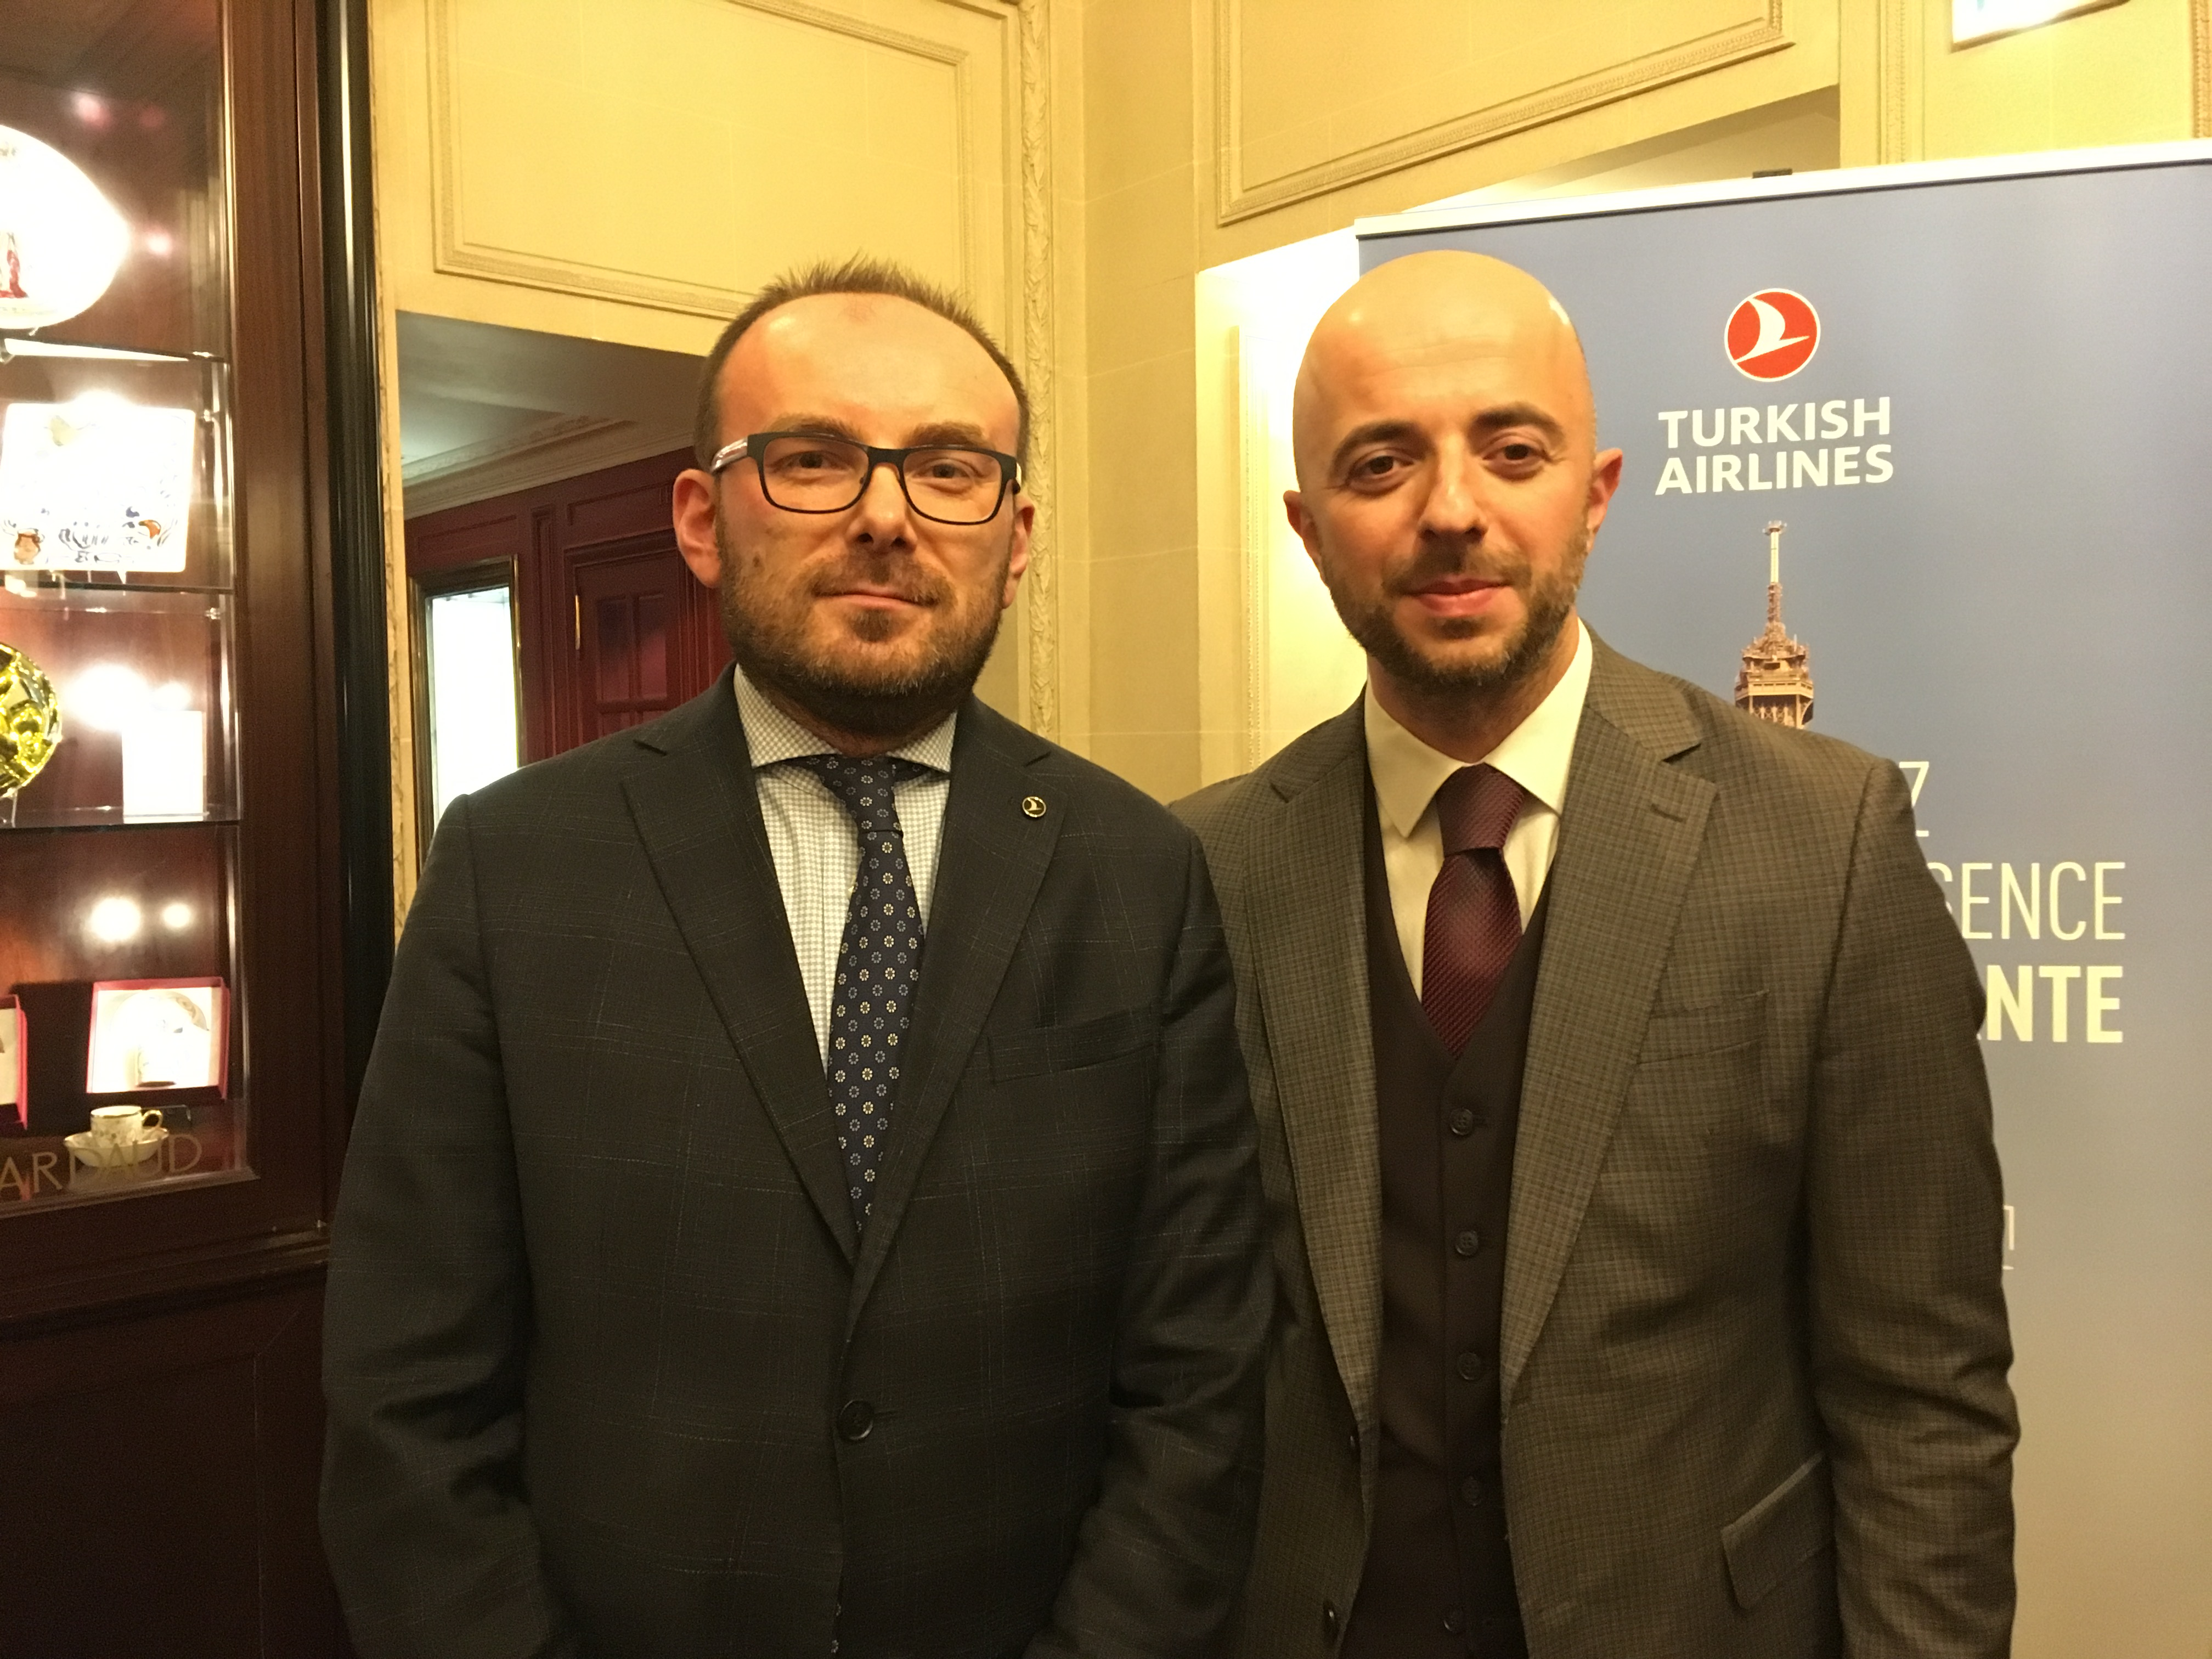 Le directeur général de Paris, M. Hikmet Mesut Türkseven et M. Ahmet Olmustur, chief marketing Officer. - CL